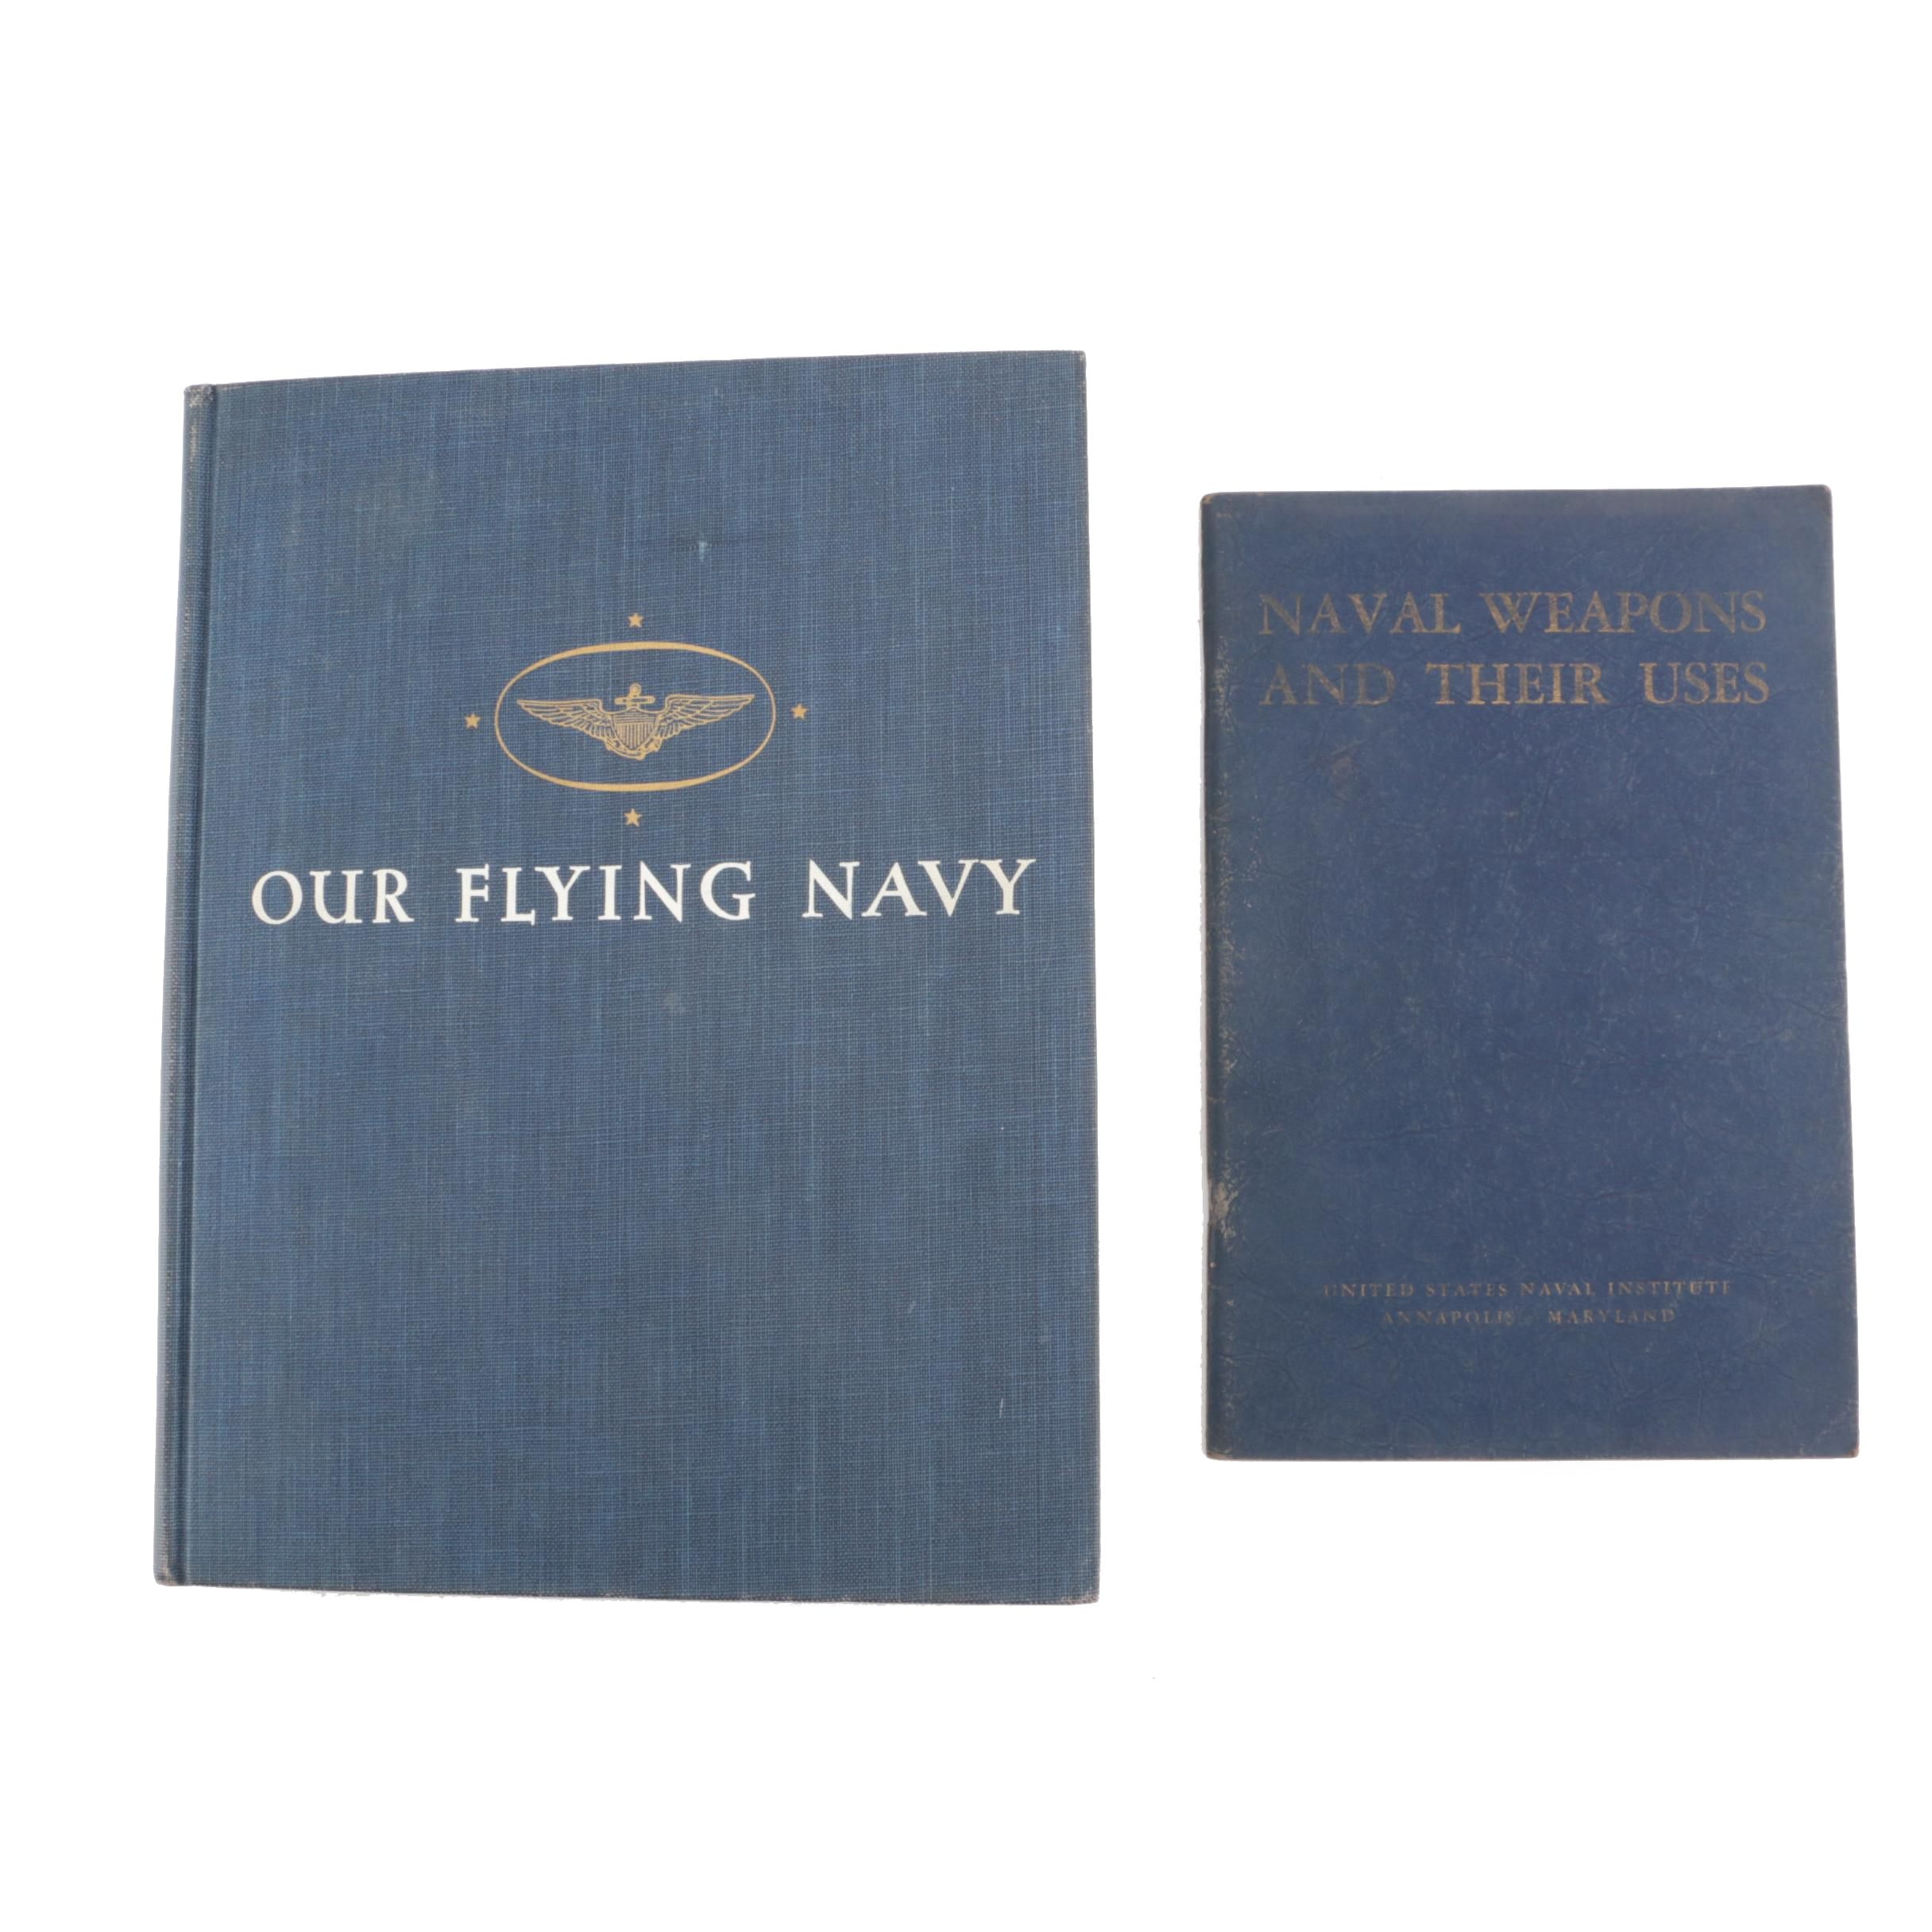 1940s Books on the United States Navy and Naval Weapons